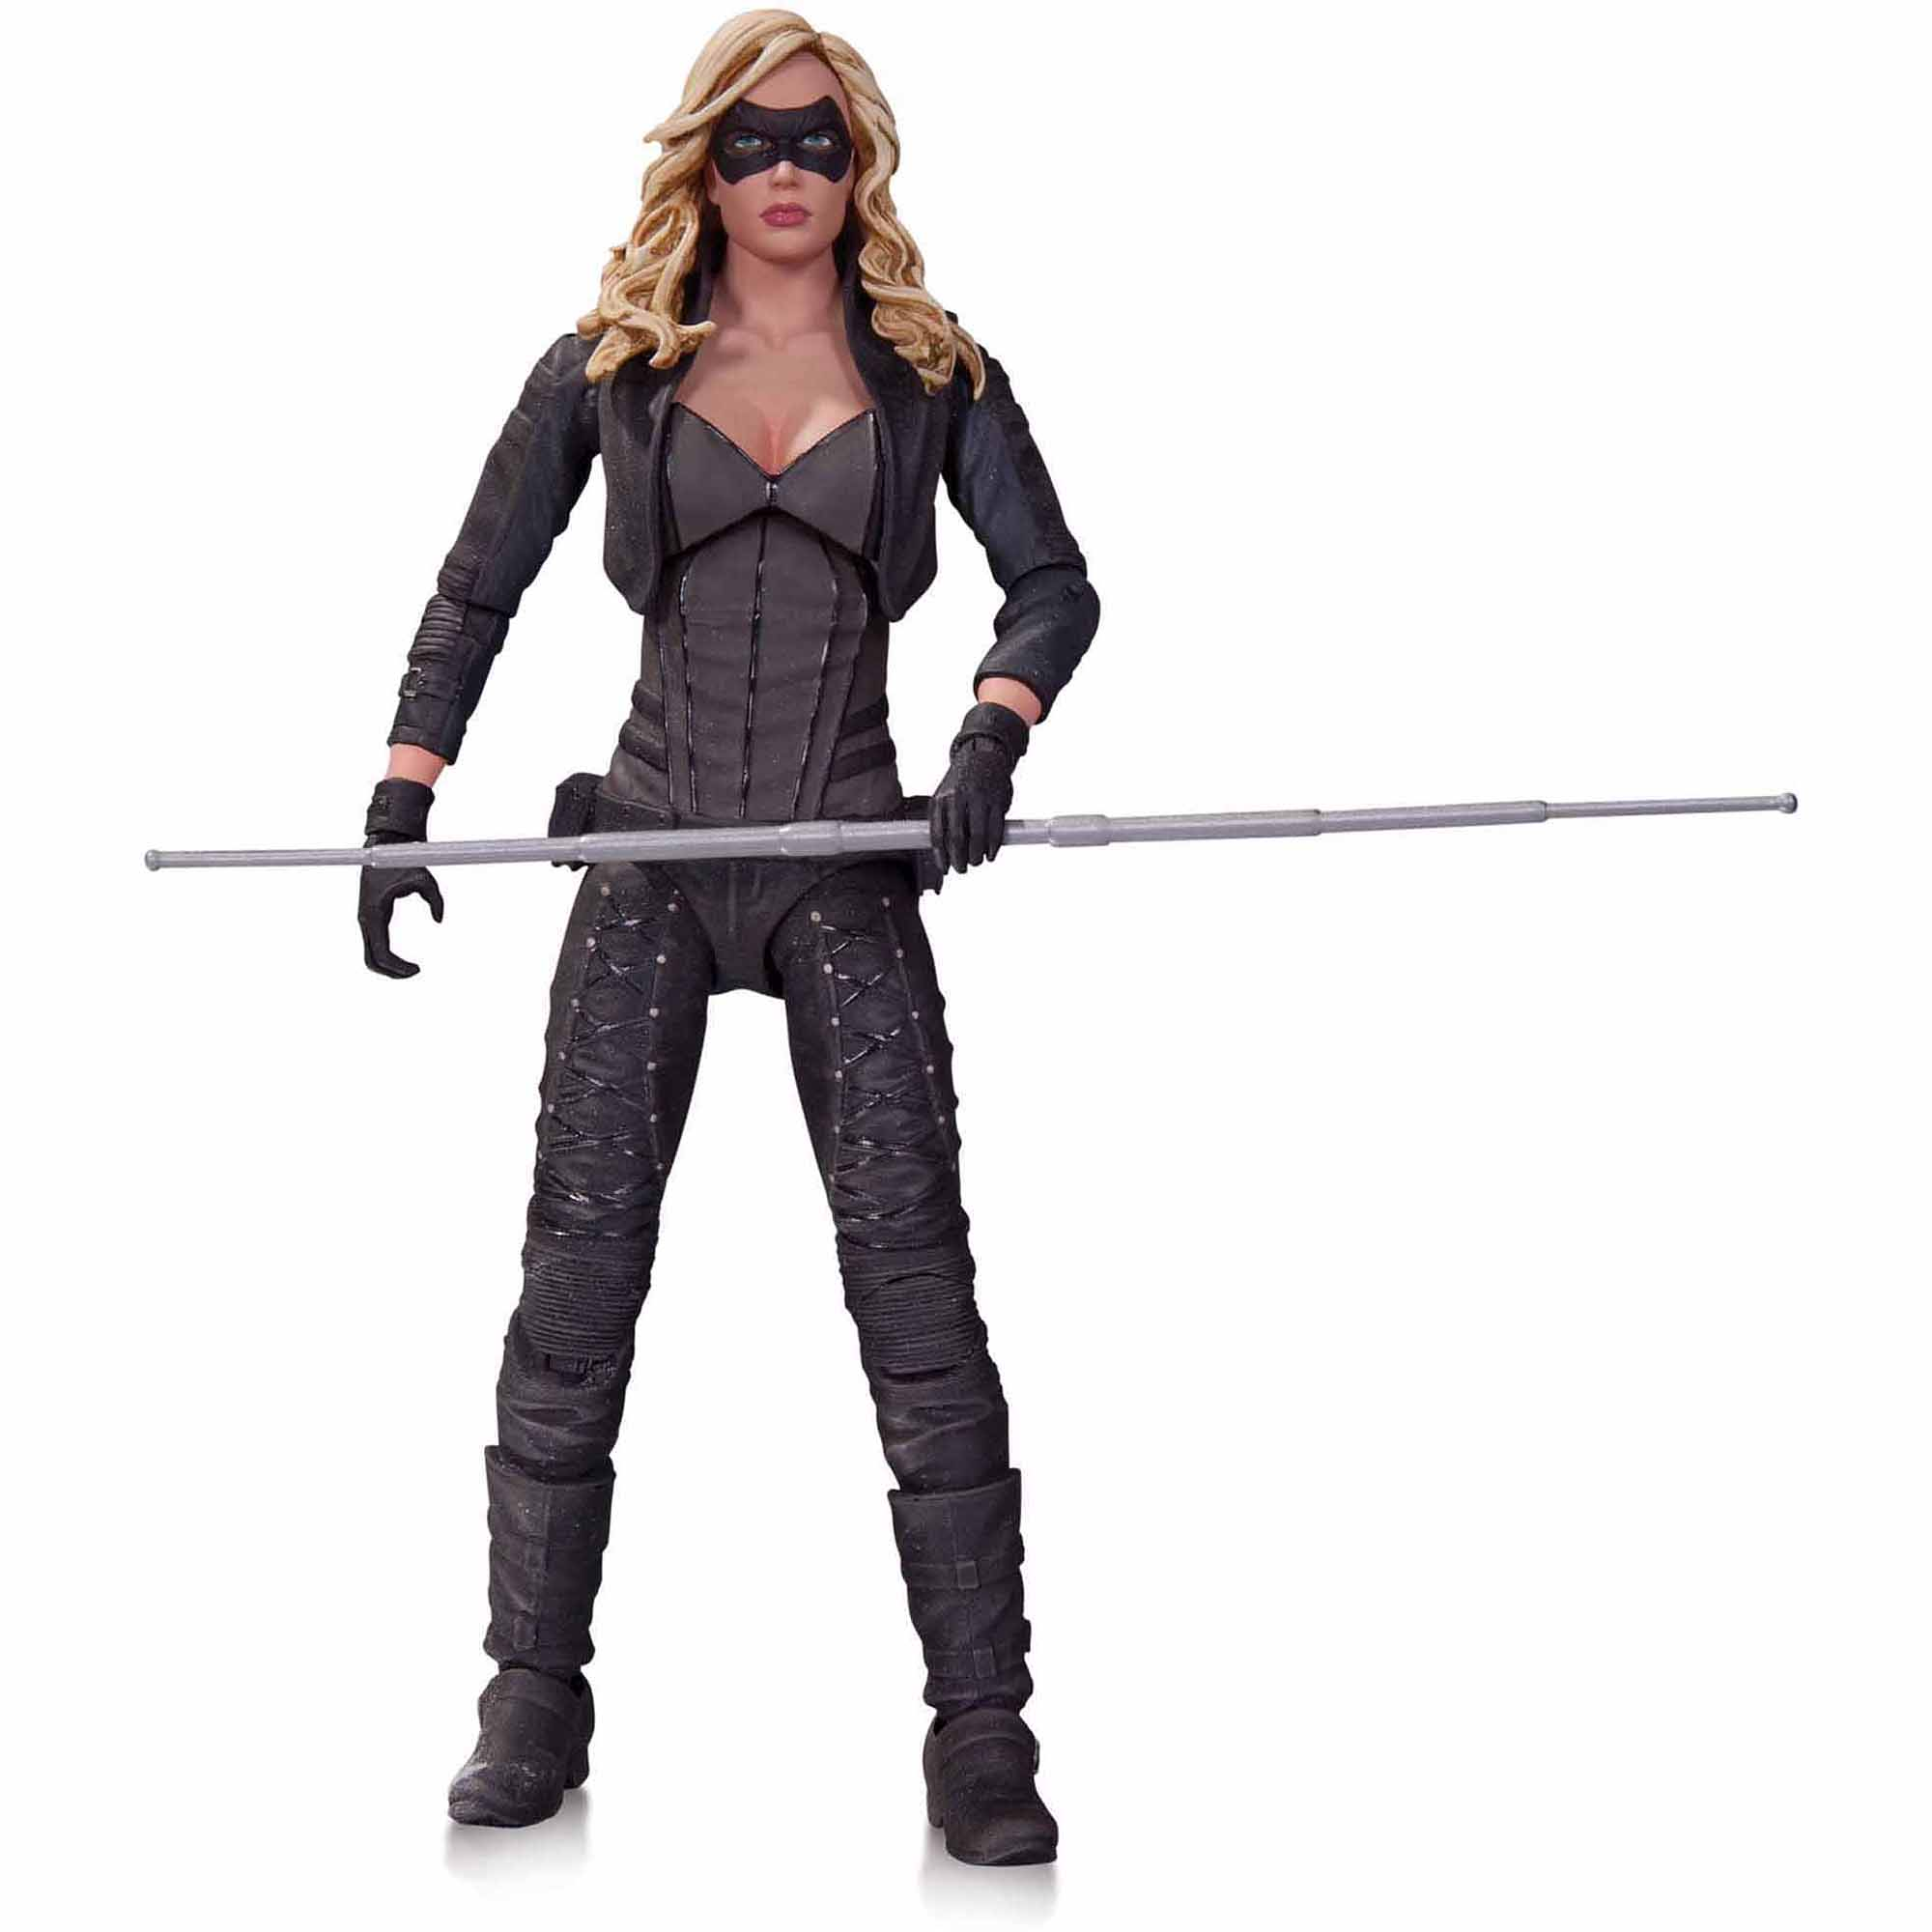 DC Comics Arrow Black Canary Action Figure by Generic